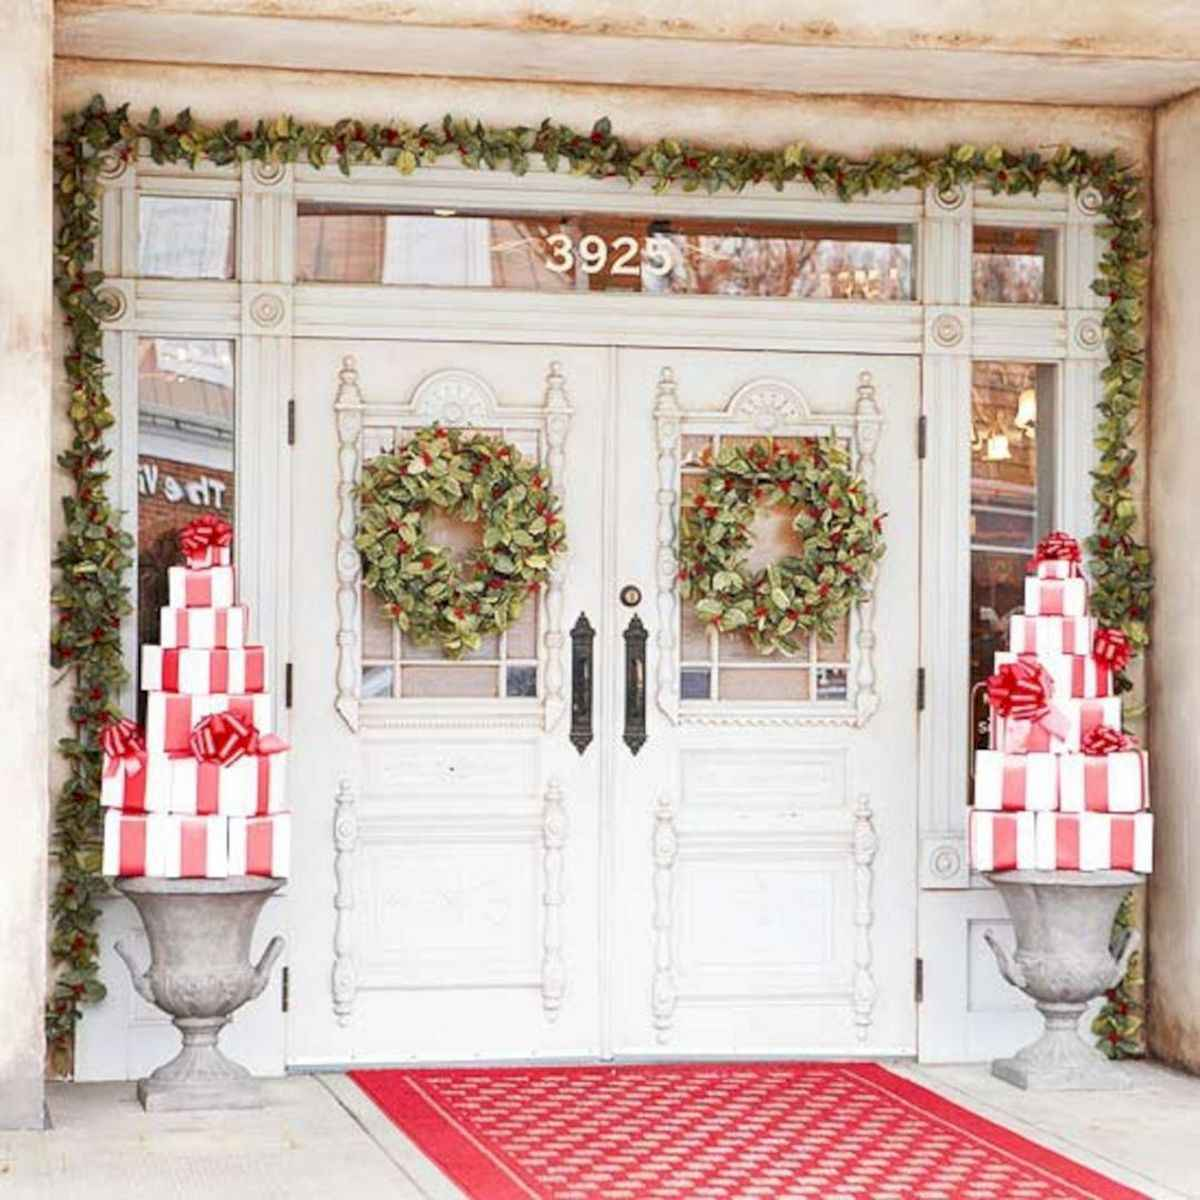 50 Awesome Christmas Front Porch Decor Ideas And Design (25)